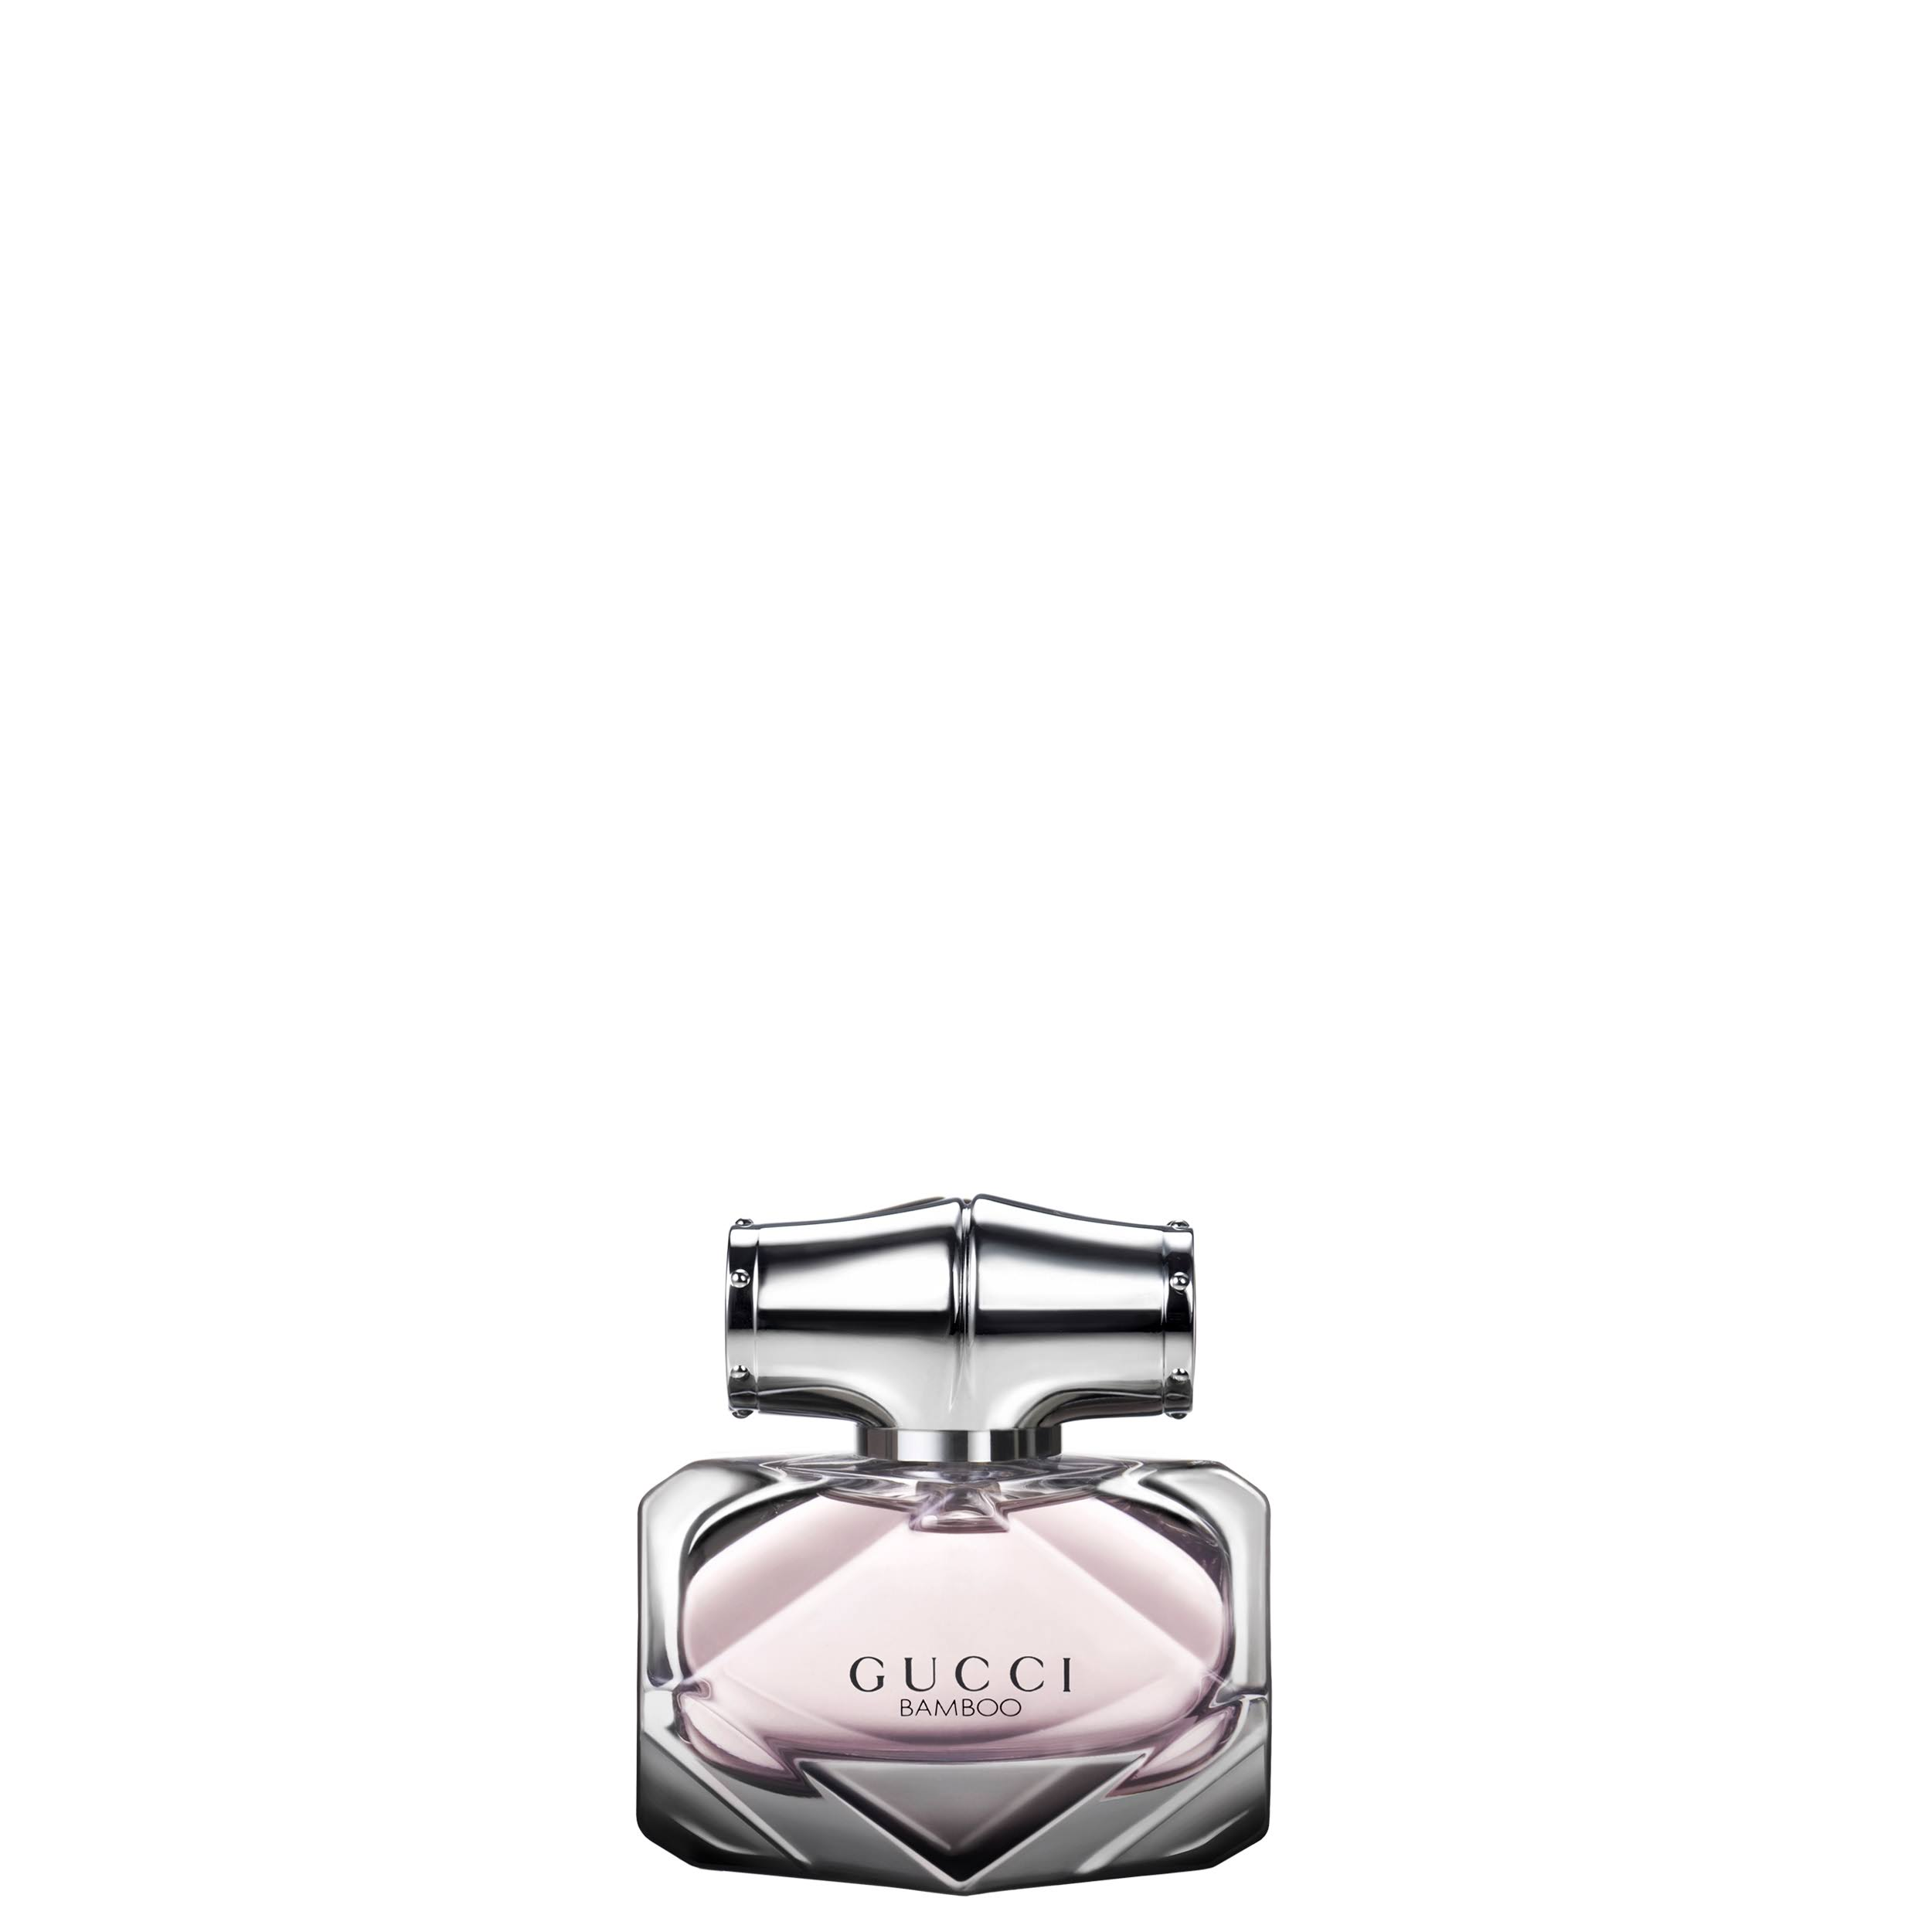 Gucci Bamboo For Women Eau De Parfum Spray - 30ml